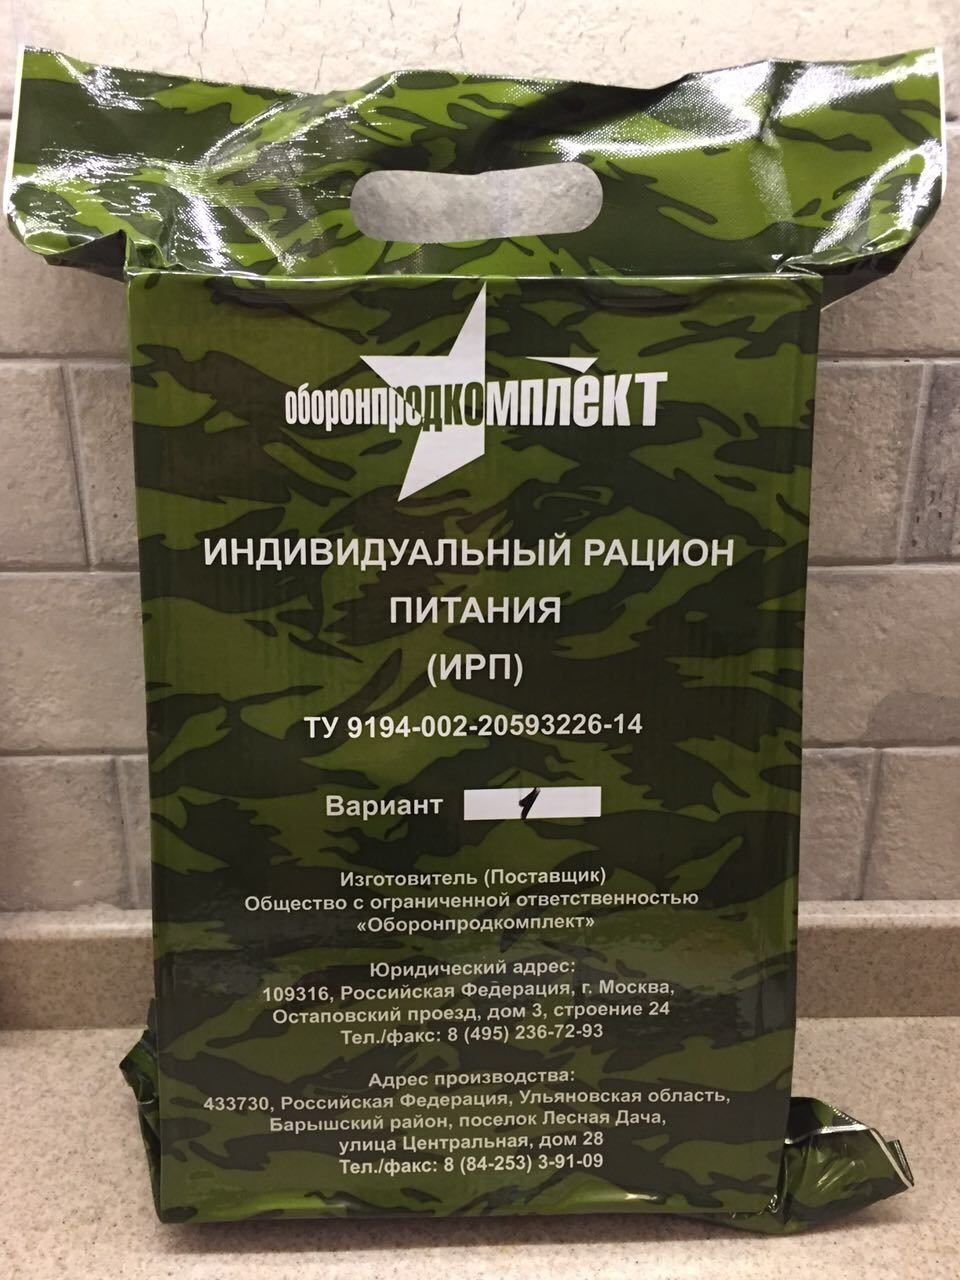 Military MRE (Meals Ready-to-eat) Daily Russian Army Food Ration Pack (1.7kg/3.7lbs) Oboronprodcomplect